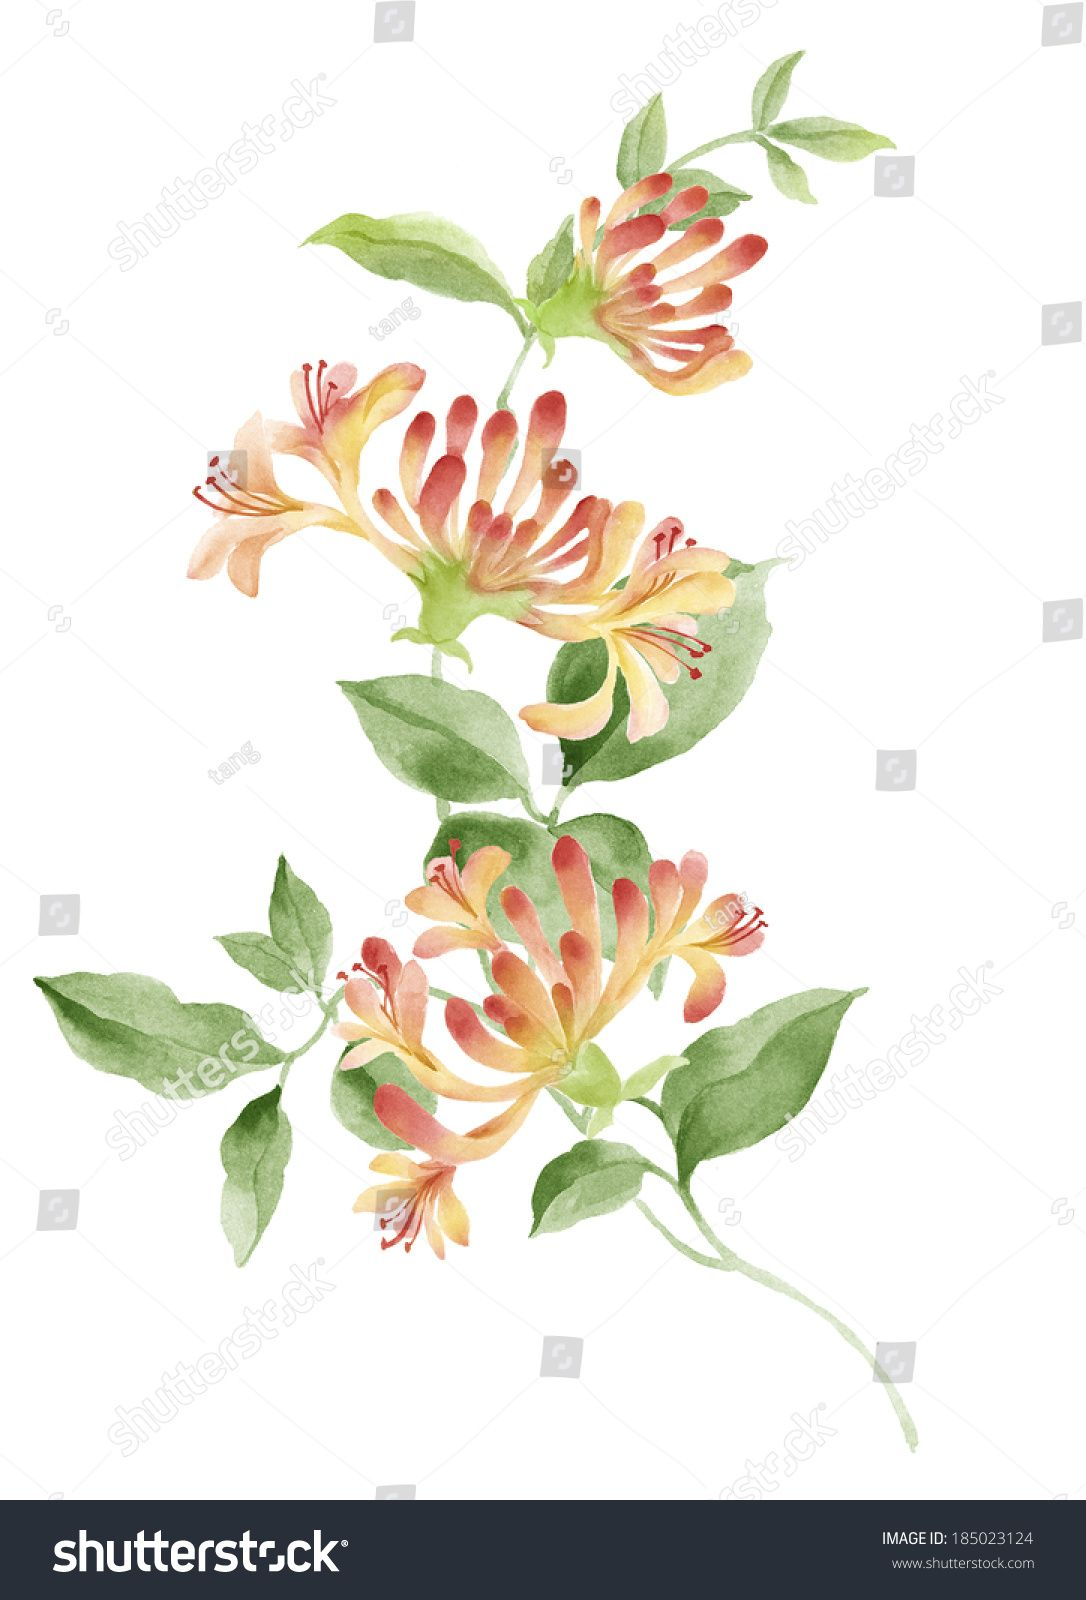 Free clipart images of wild honeysuckle bush png freeuse stock watercolor illustration Honeysuckle in simple background | Tattoos ... png freeuse stock